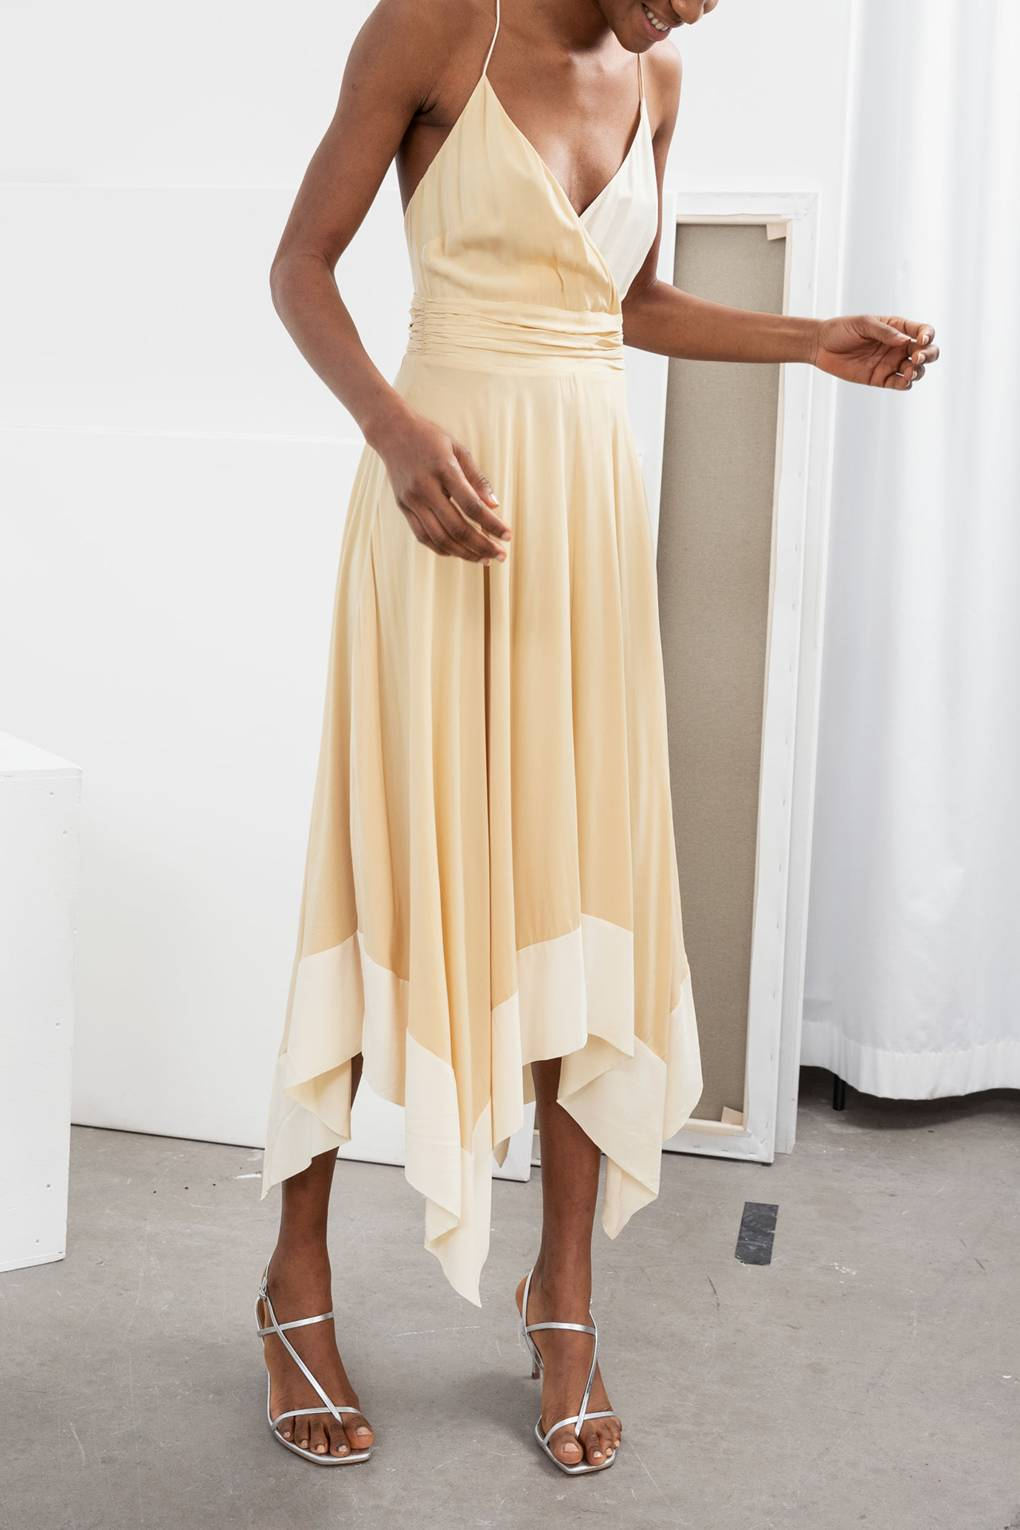 fc544005fee Chic Spring Wedding Guest Dresses - What To Wear To A Wedding In 2019